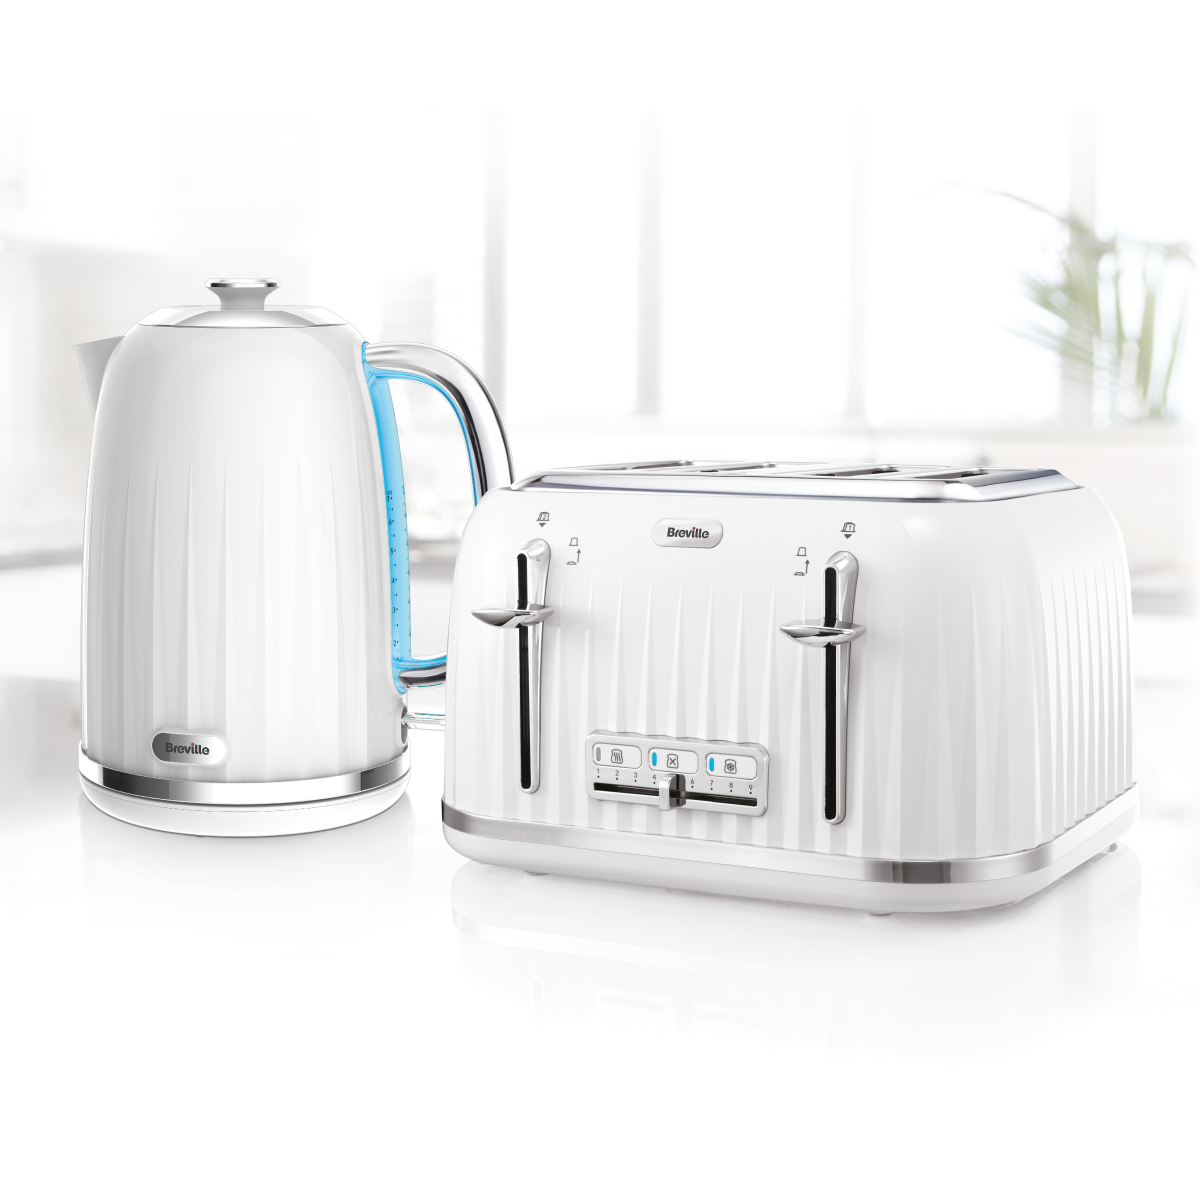 Matching Coffee Maker And Toaster : Impressions Collection 1.7L Jug Kettle and 4 Slice Toaster, White impressions-white - Breville?